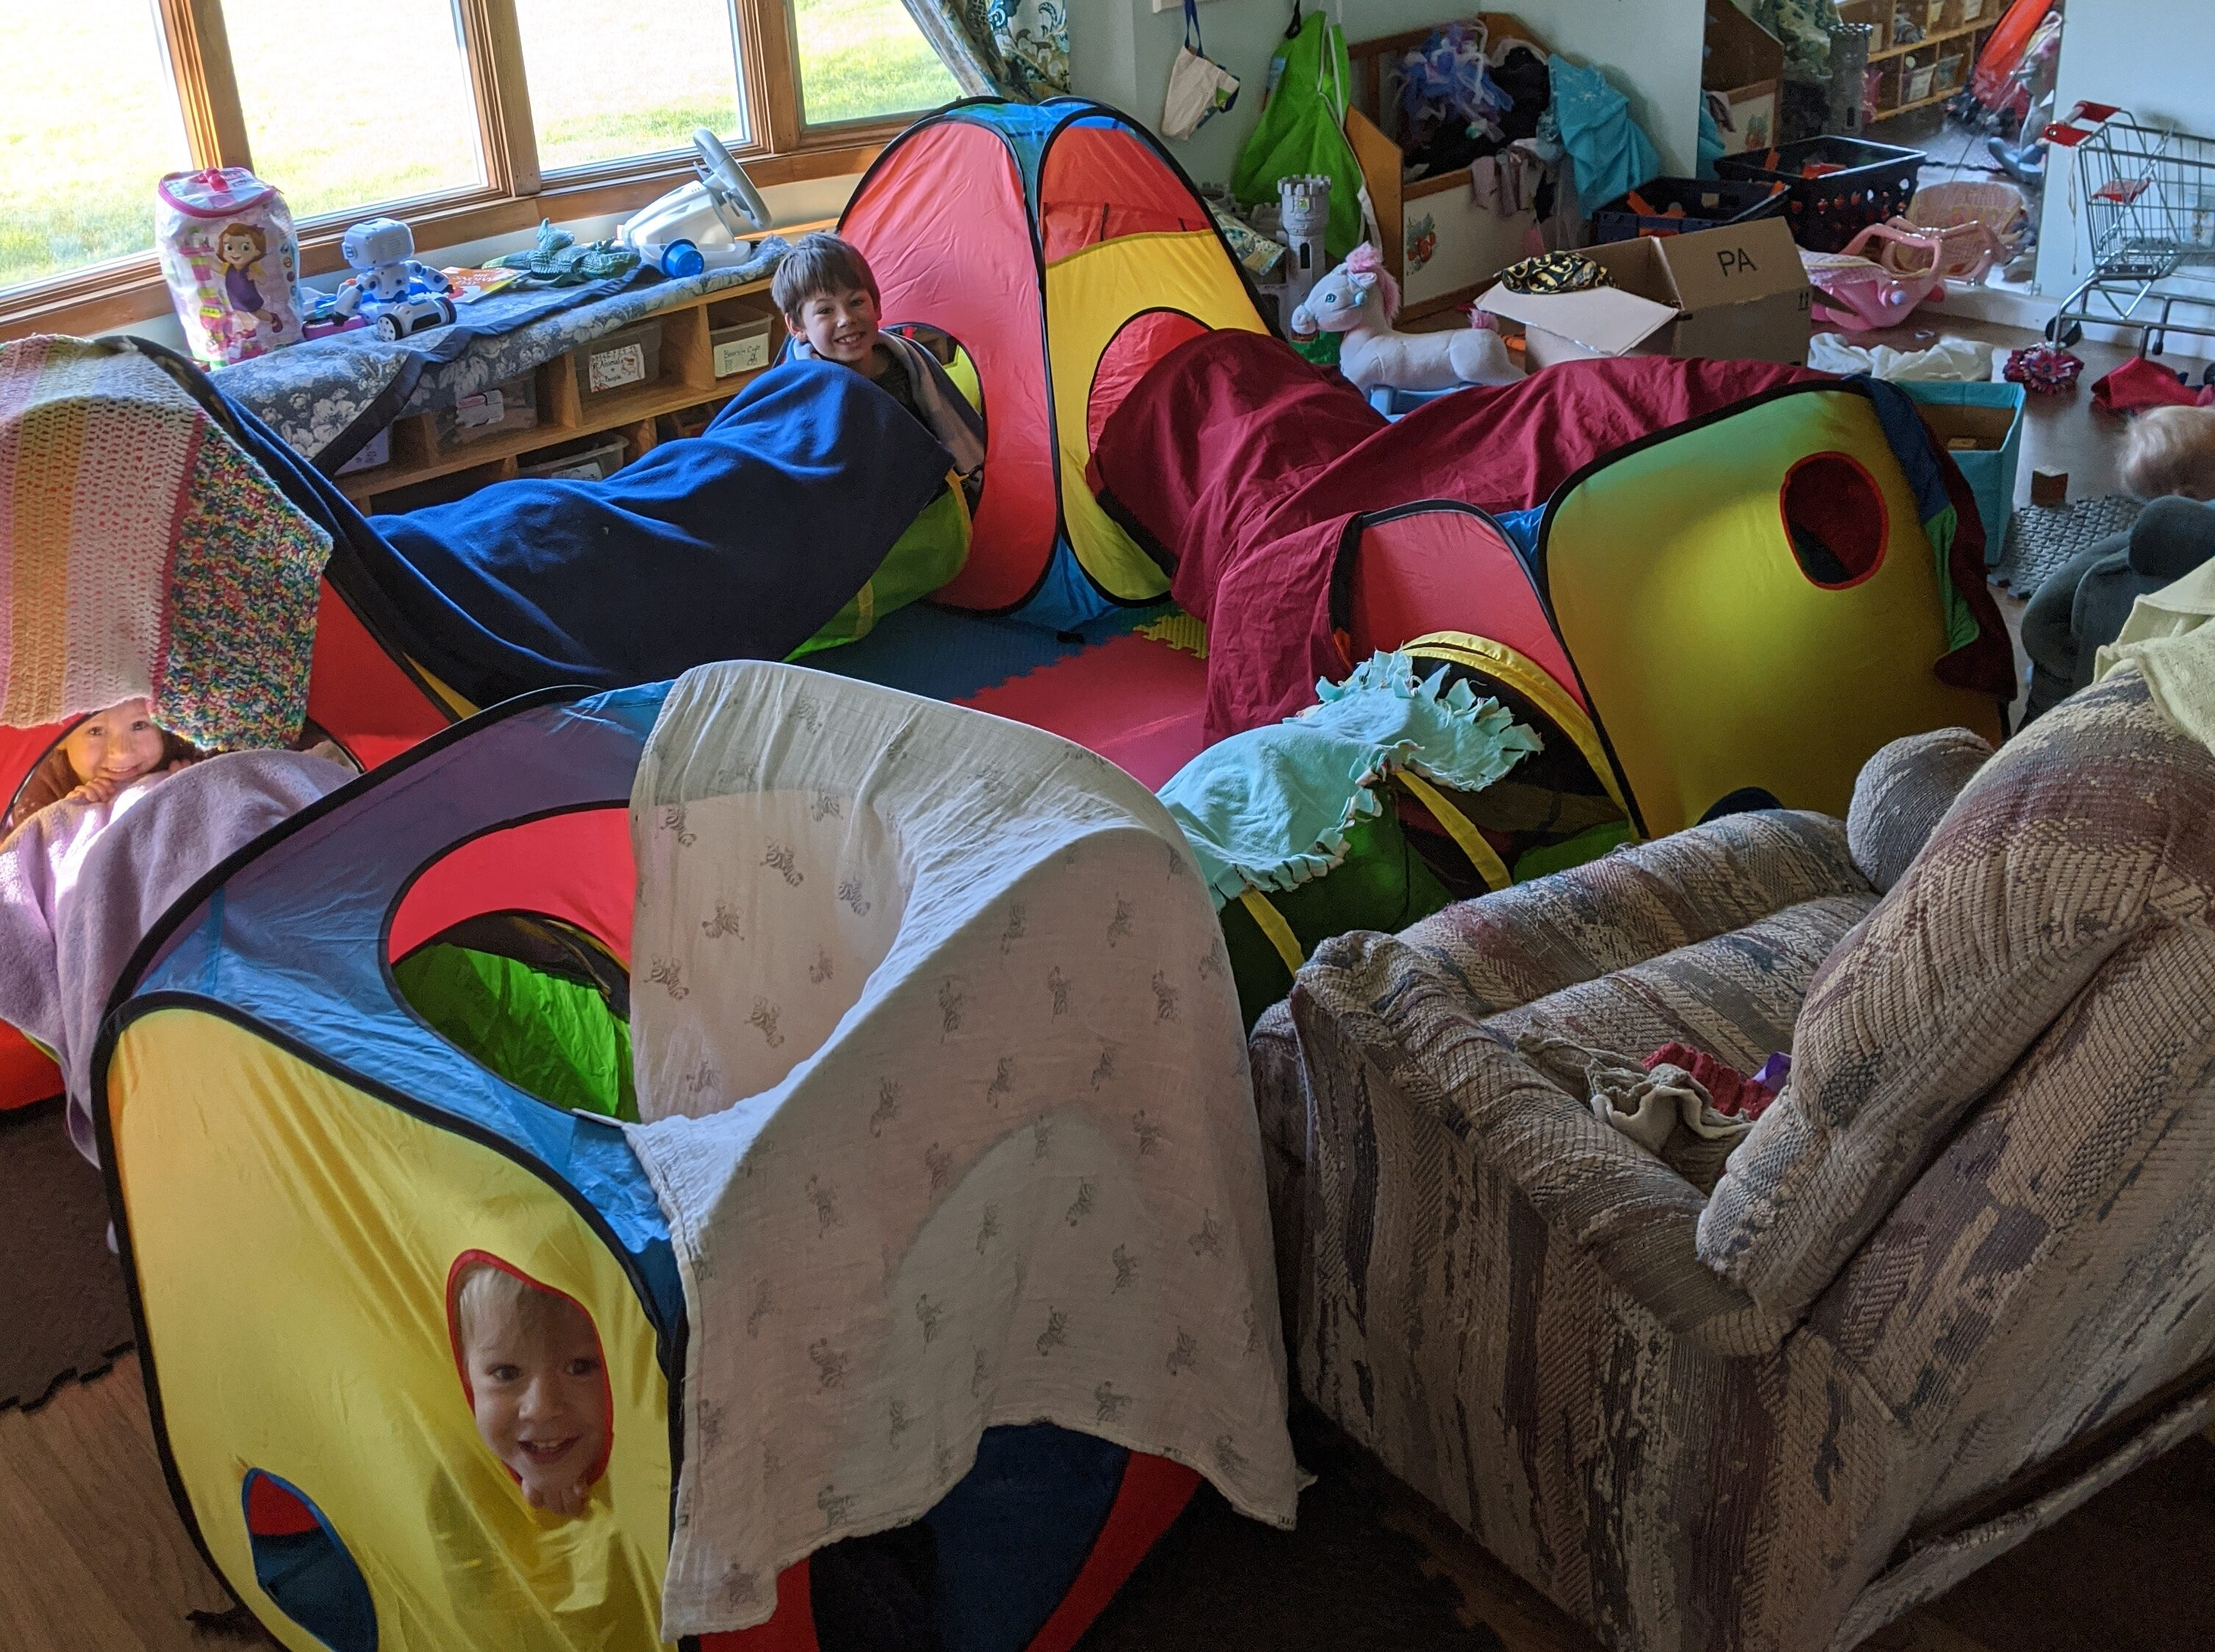 kids playing in toy tents